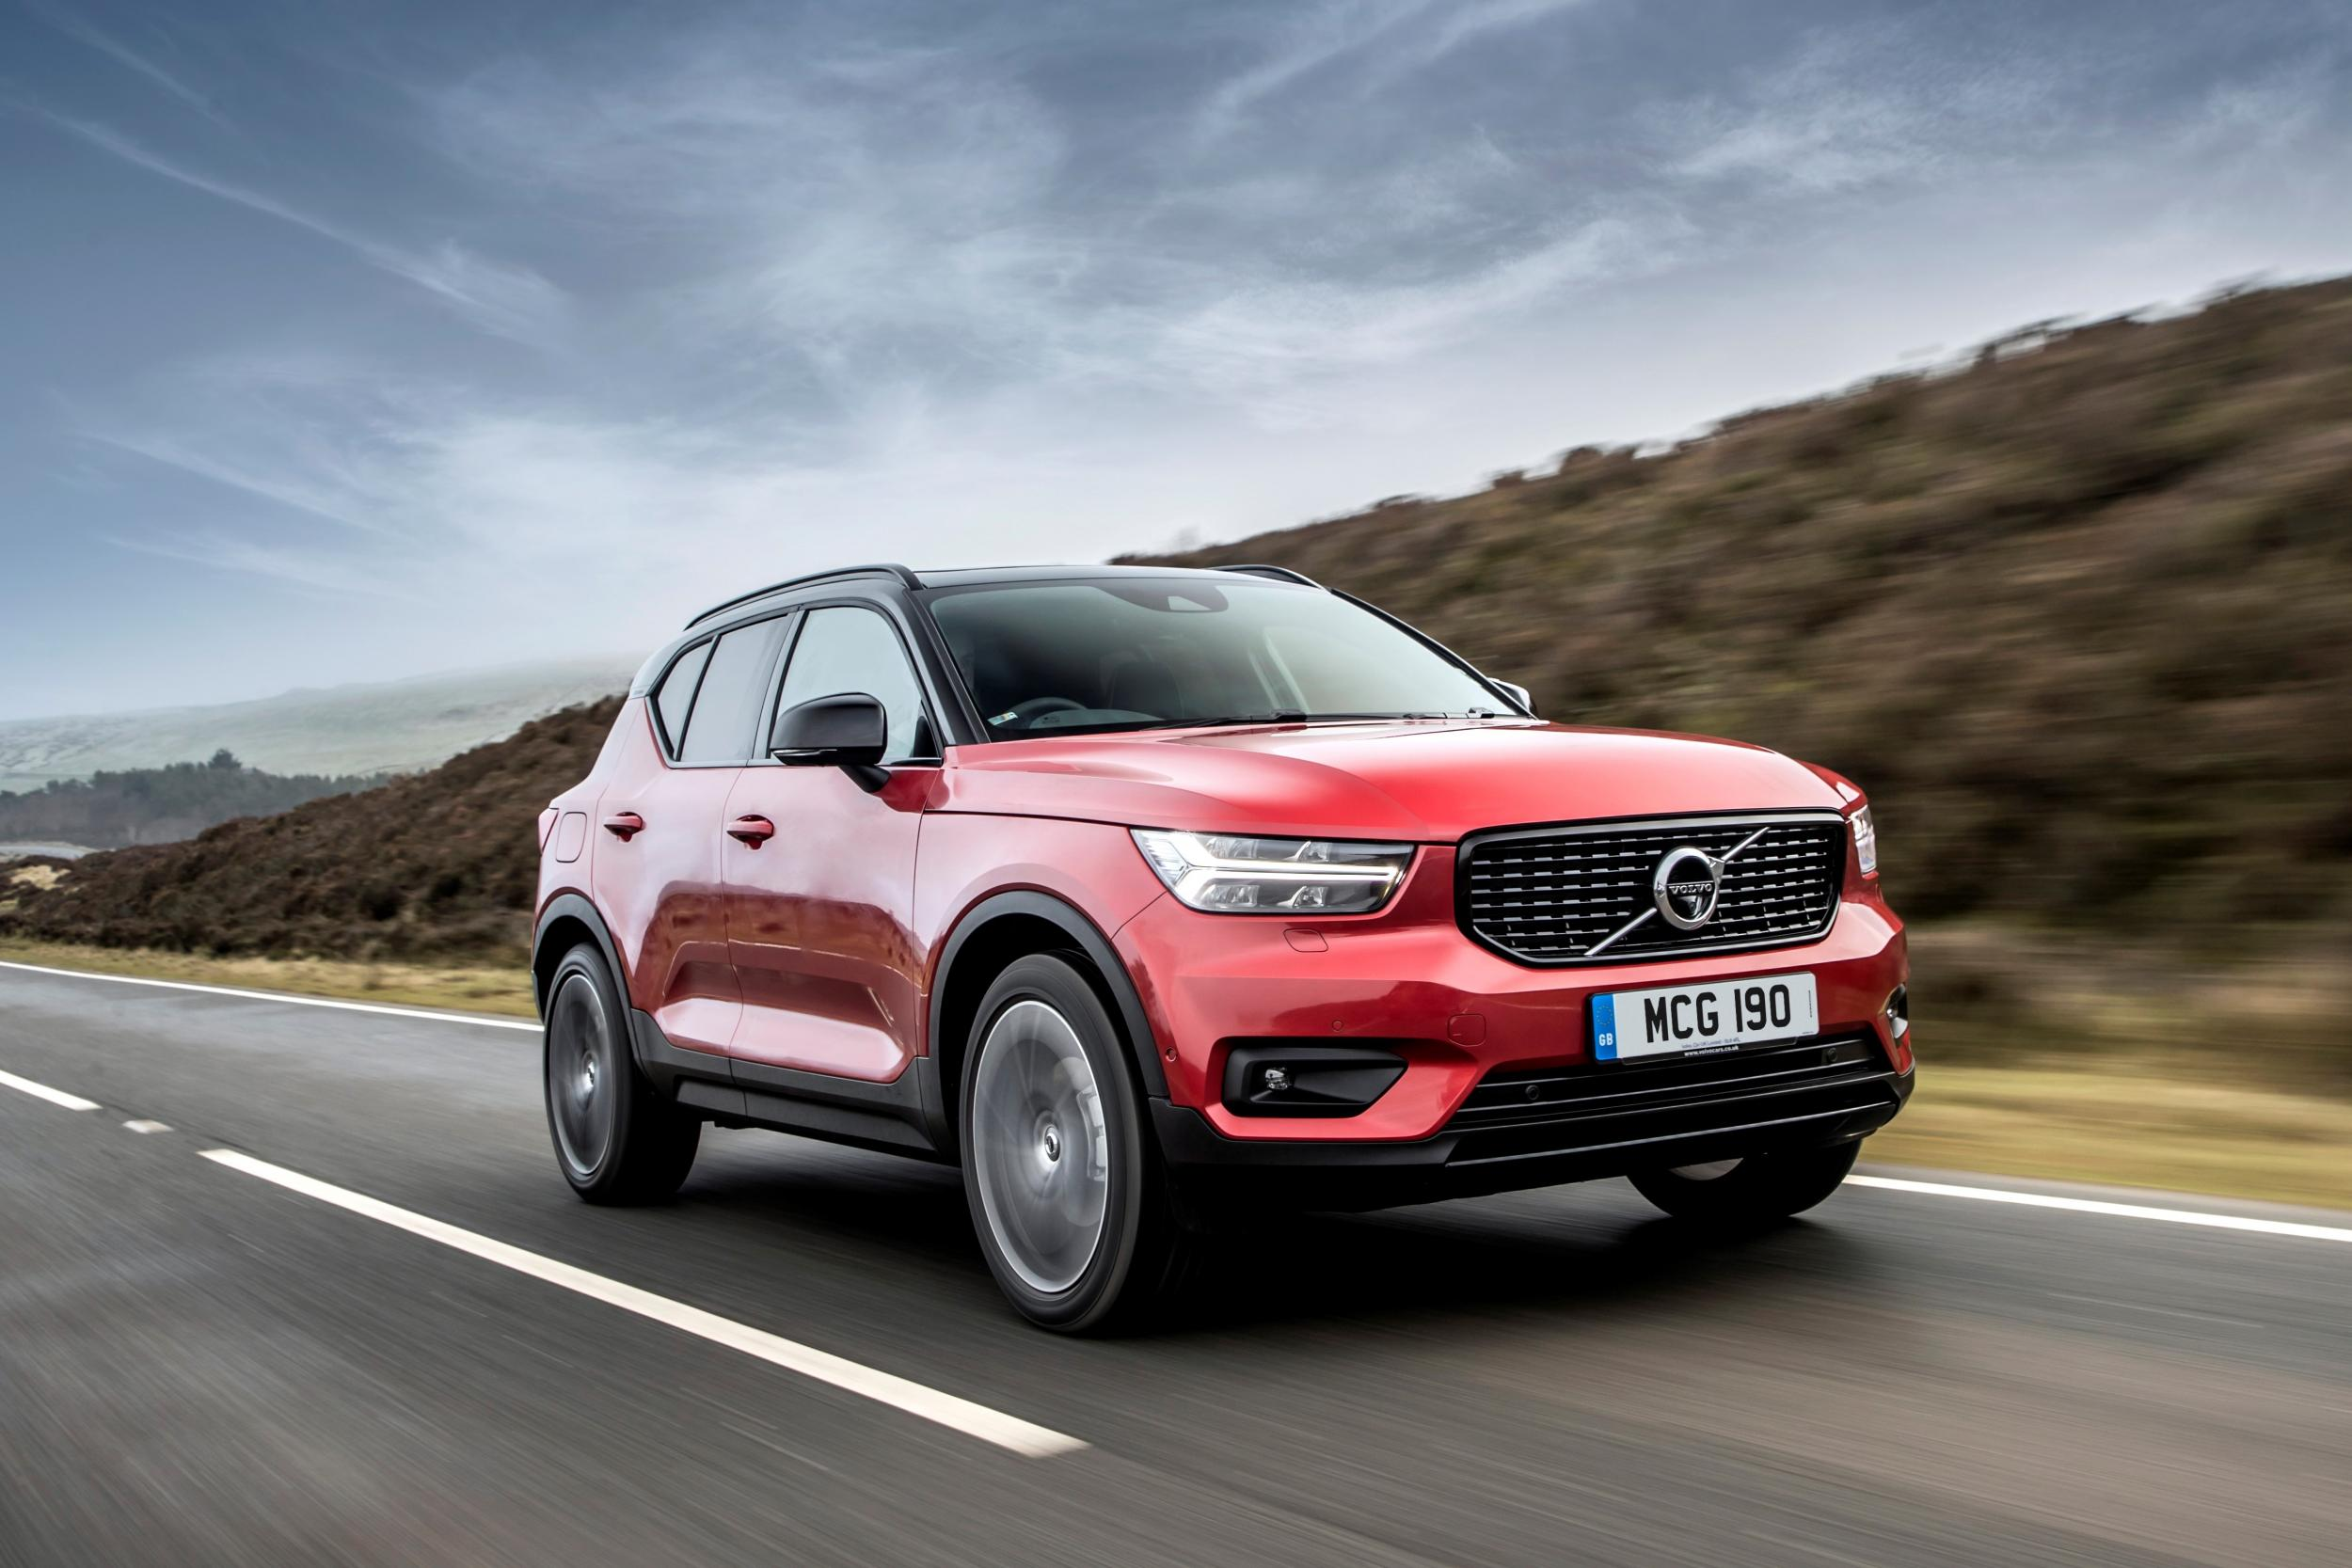 Volvo Xc40 Latest News Breaking Stories And Comment The Independent